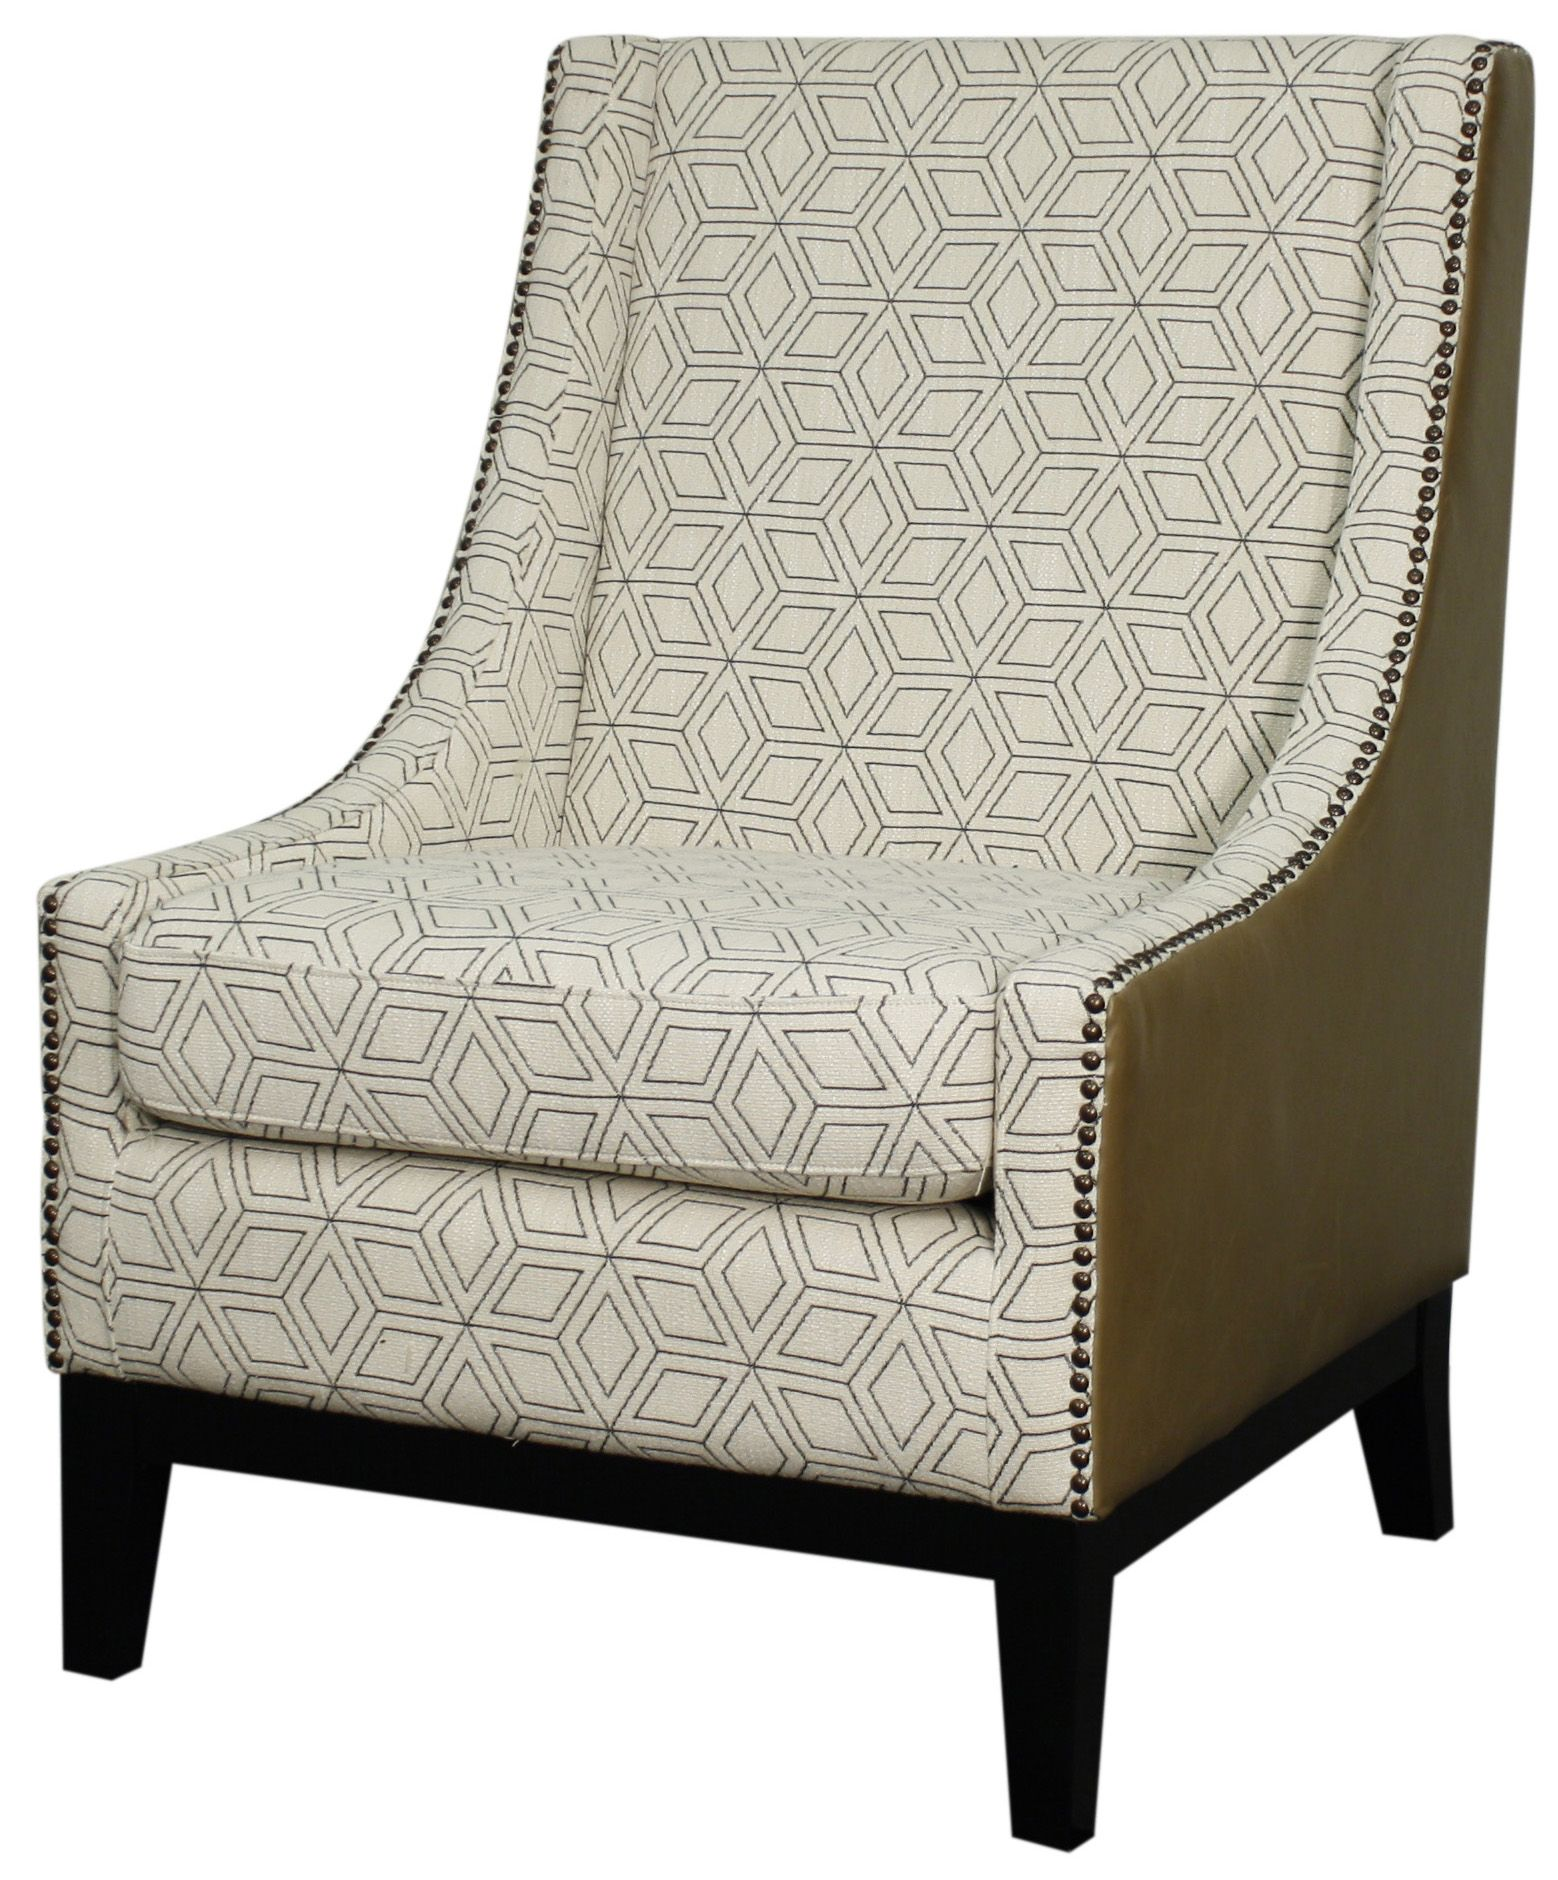 Harrison Accent Chair in Geo Diamond Vintage Taupe pattern with